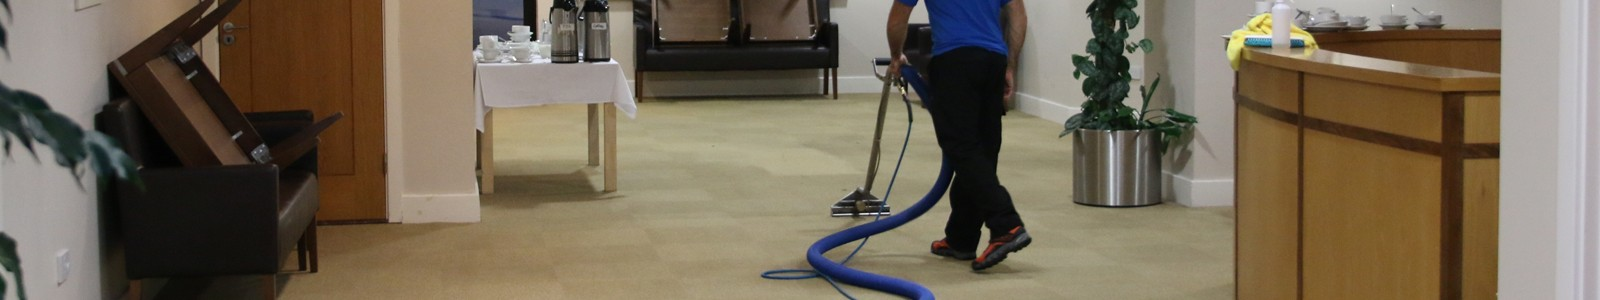 Commercial Carpet Cleaning Dublin